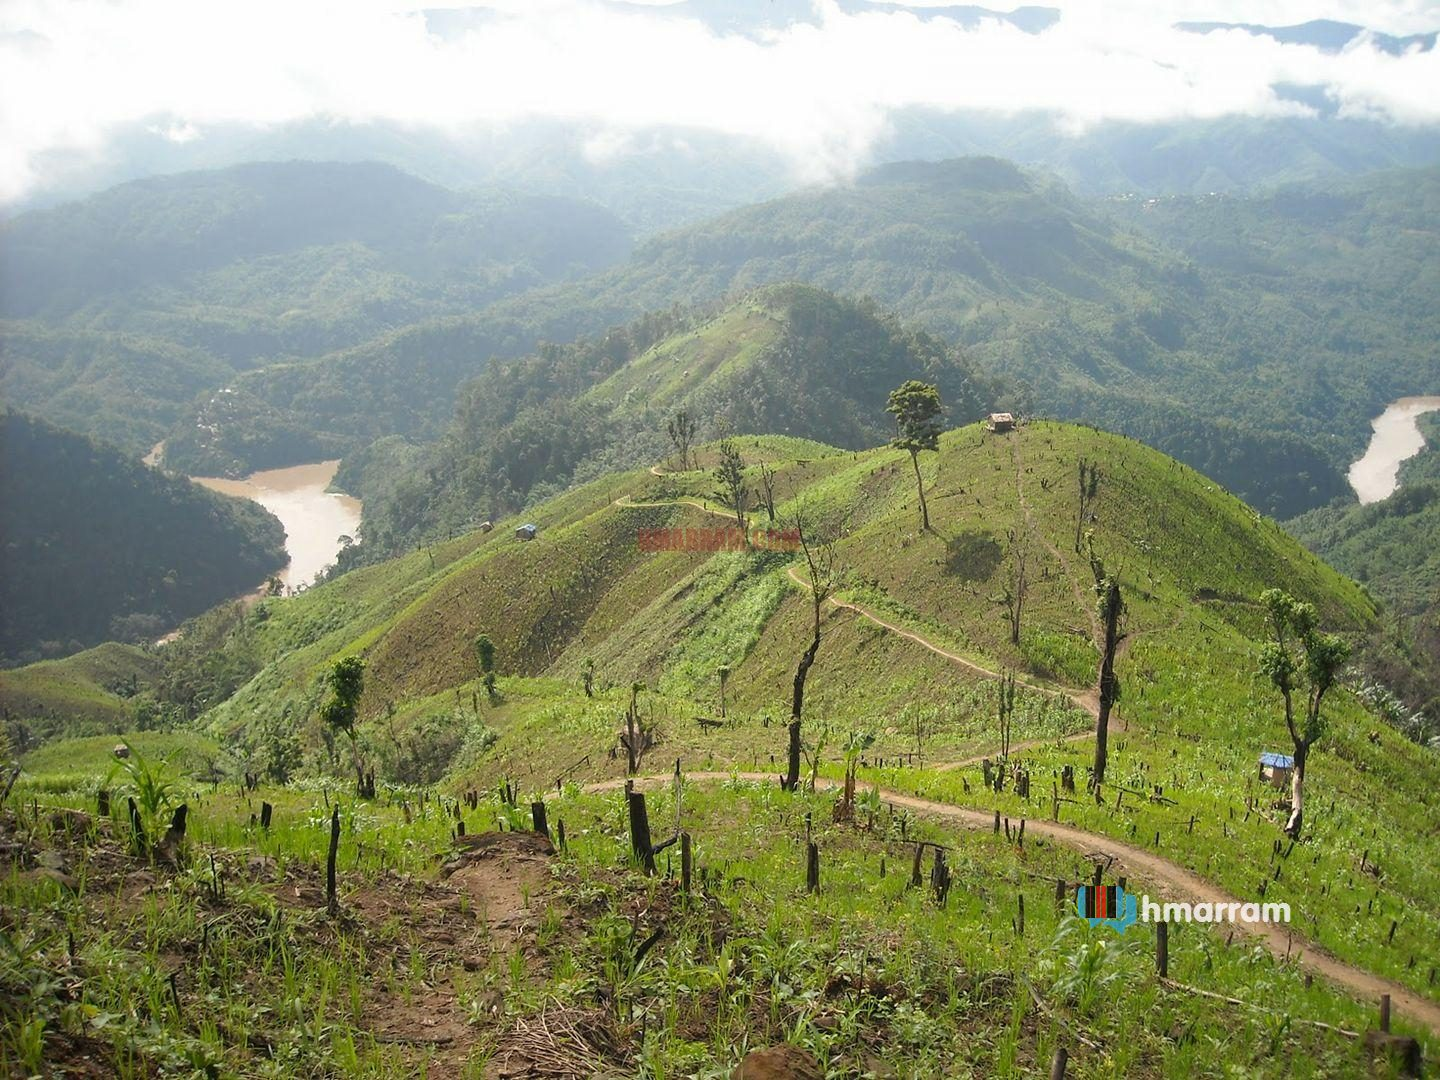 A jhum field in near Tuiruong River (Barak) in Hmar Hills, Pherzawl District of Manipur.